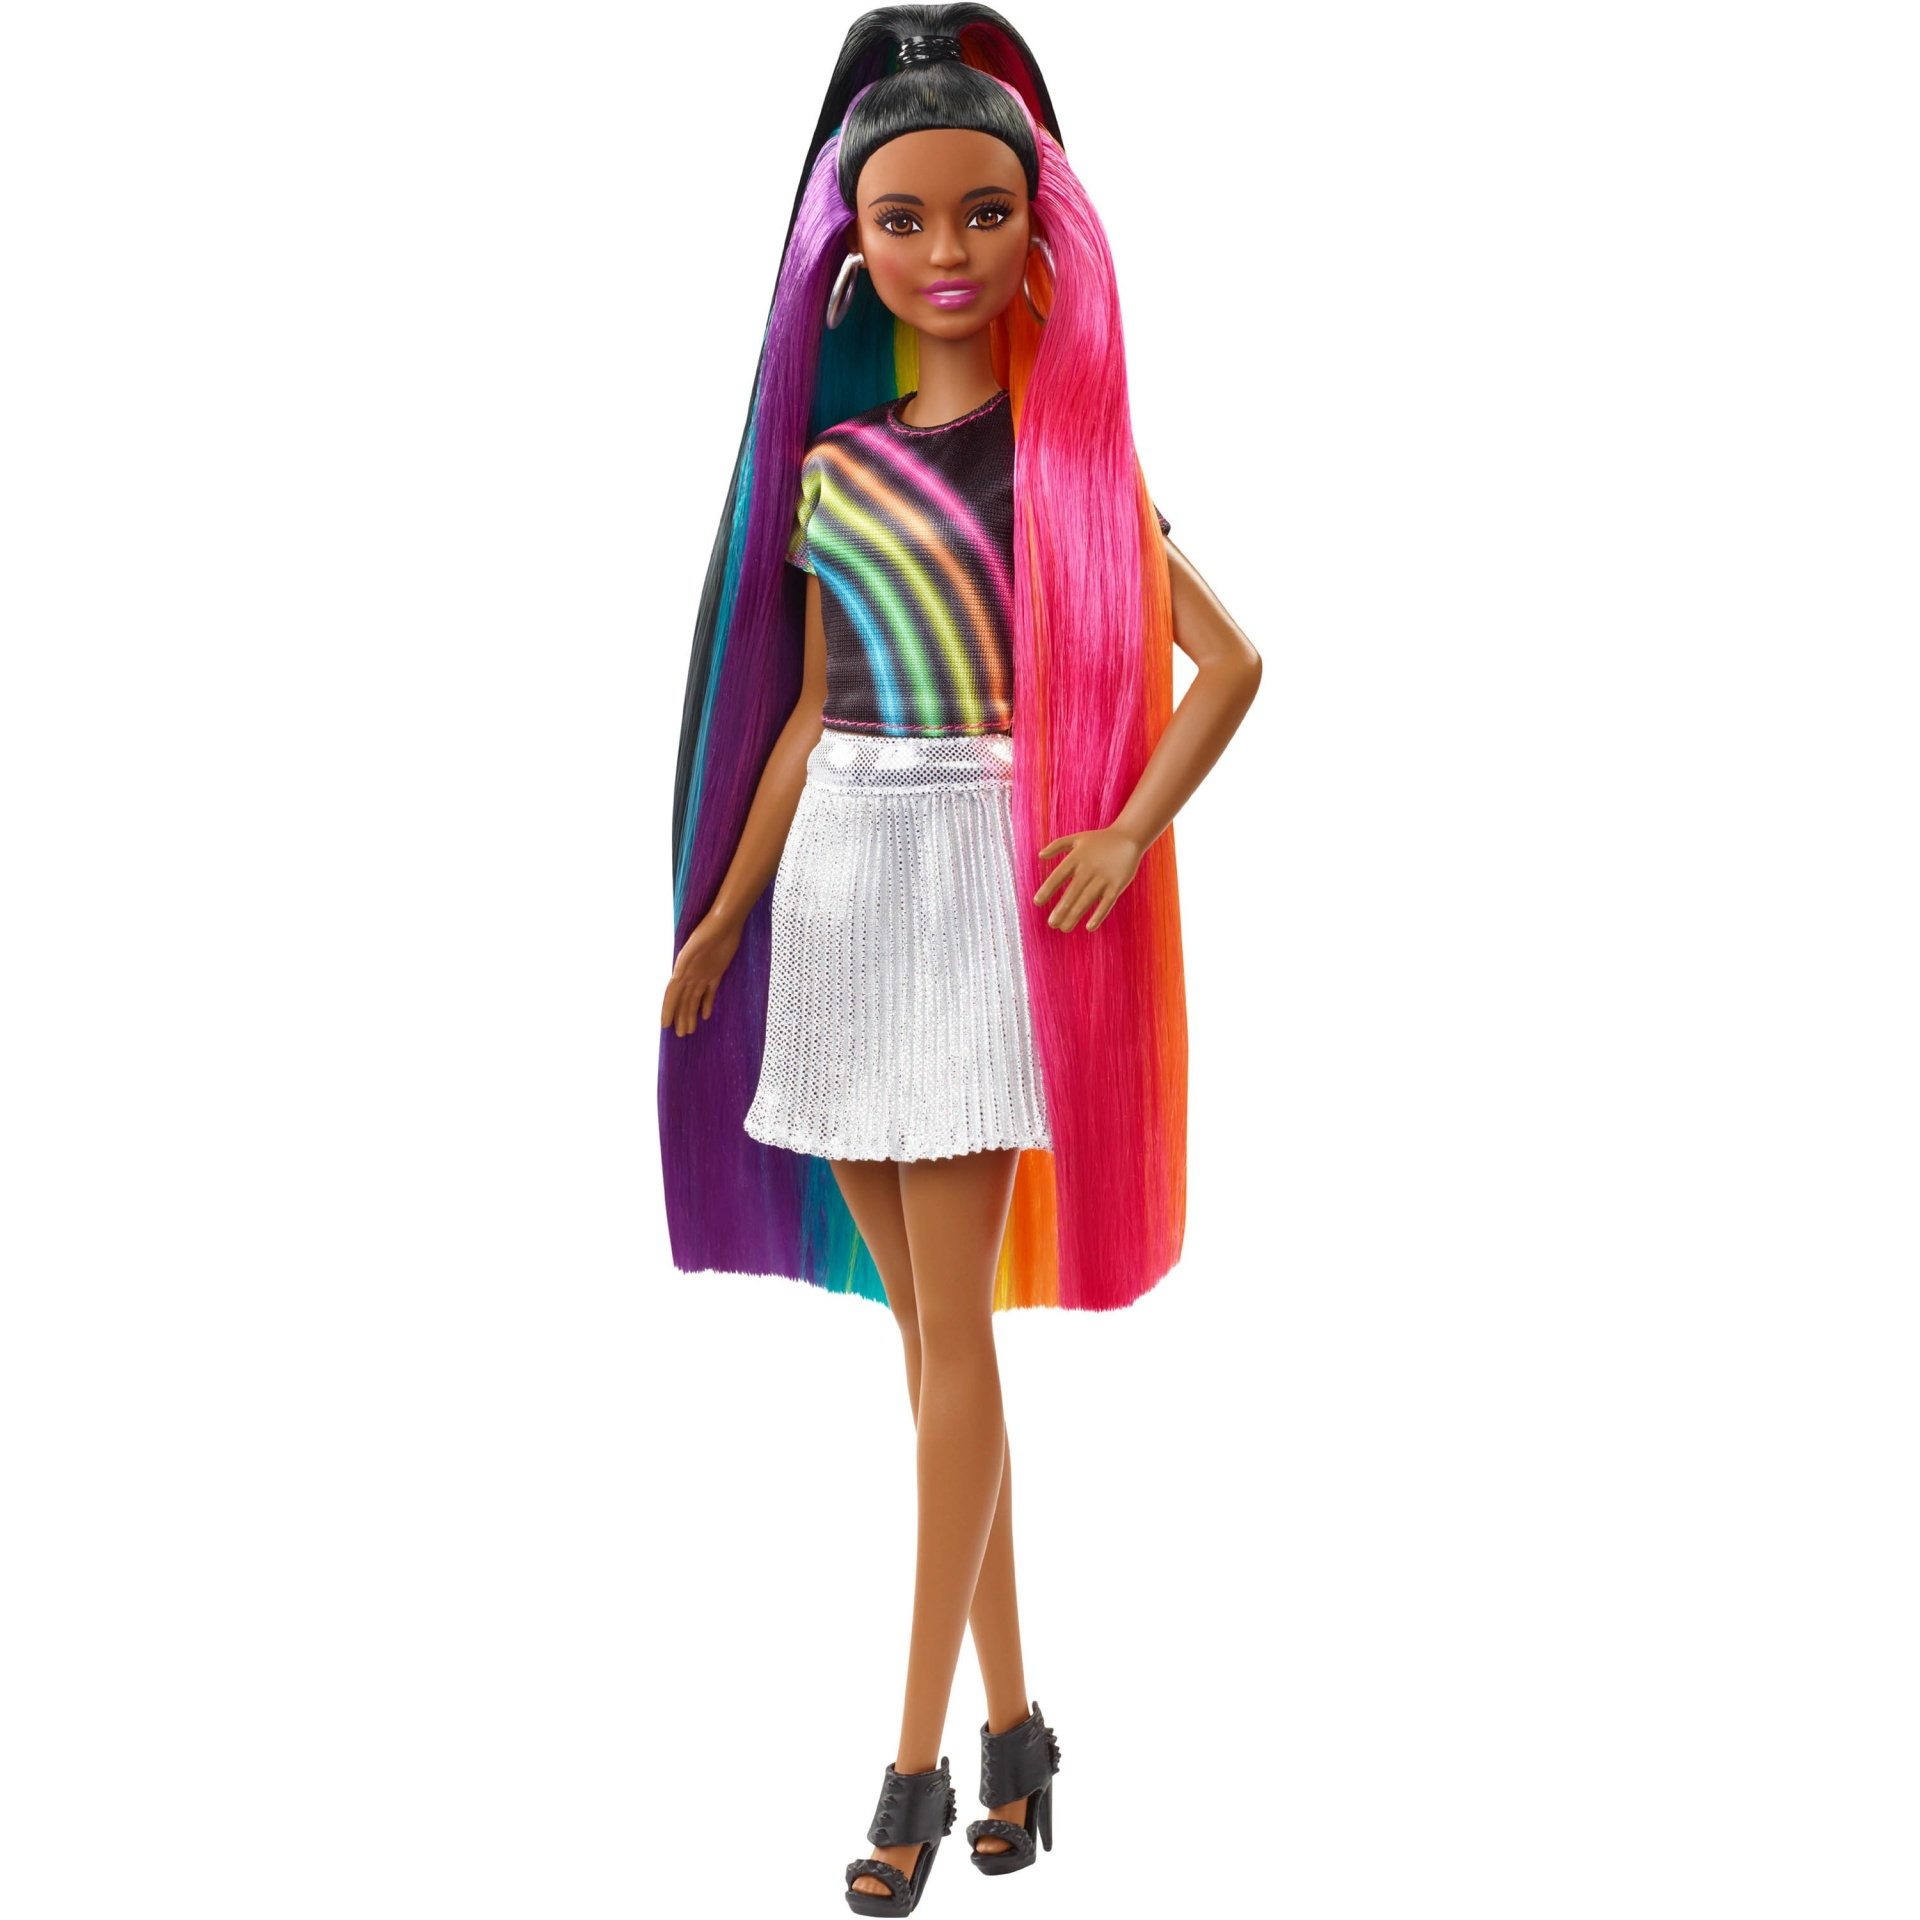 slide 1 of 16, Barbie Rainbow Sparkle Hair Nikki Doll,